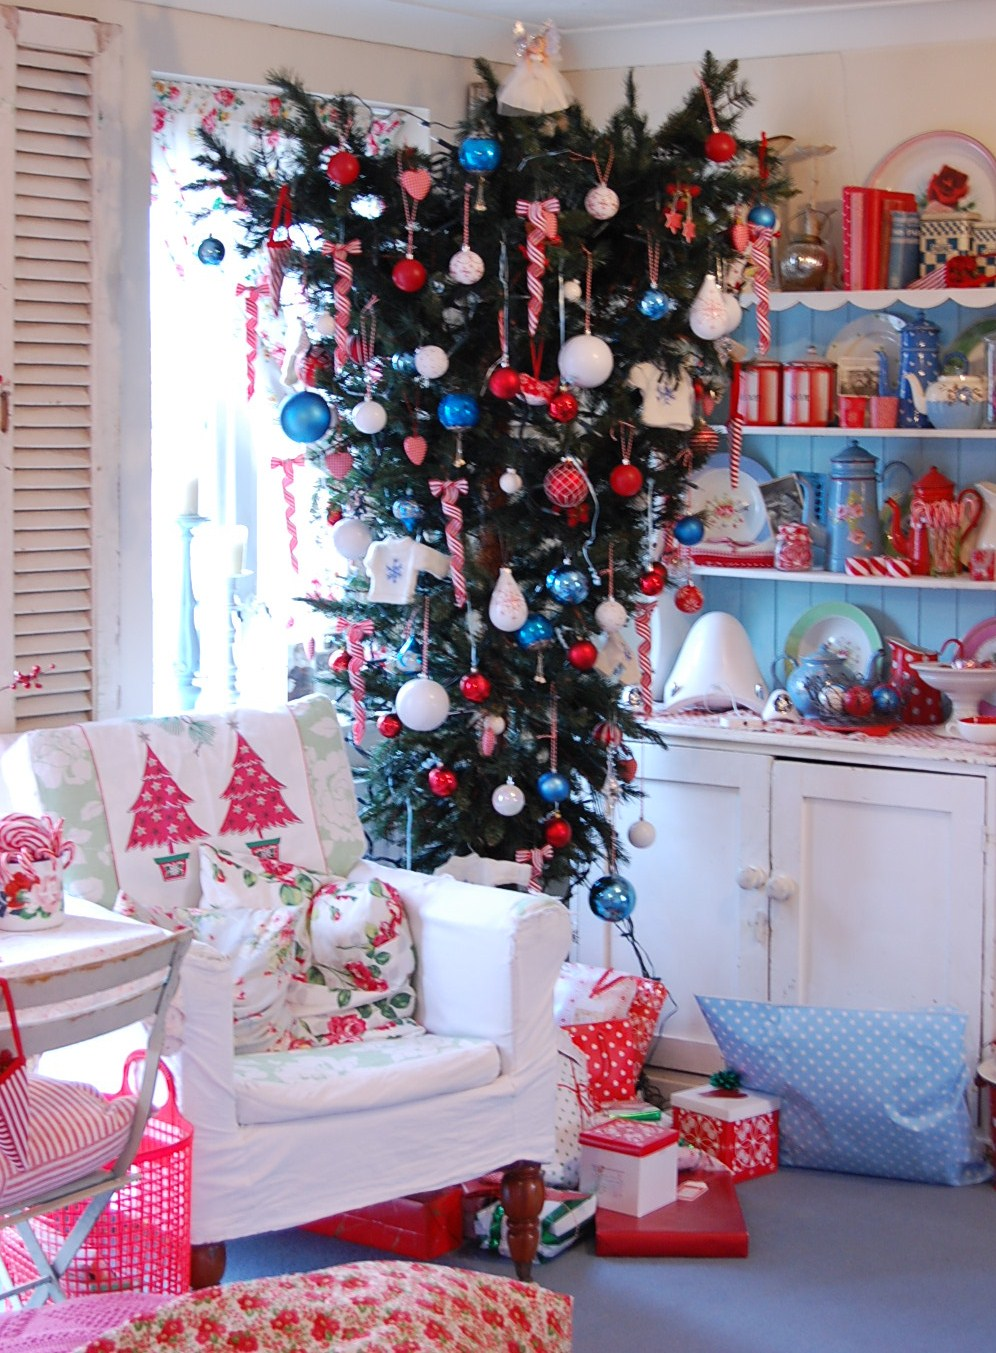 Upside Down Christmas Trees: Ho, ho, ho or No, no, no? - Home ...